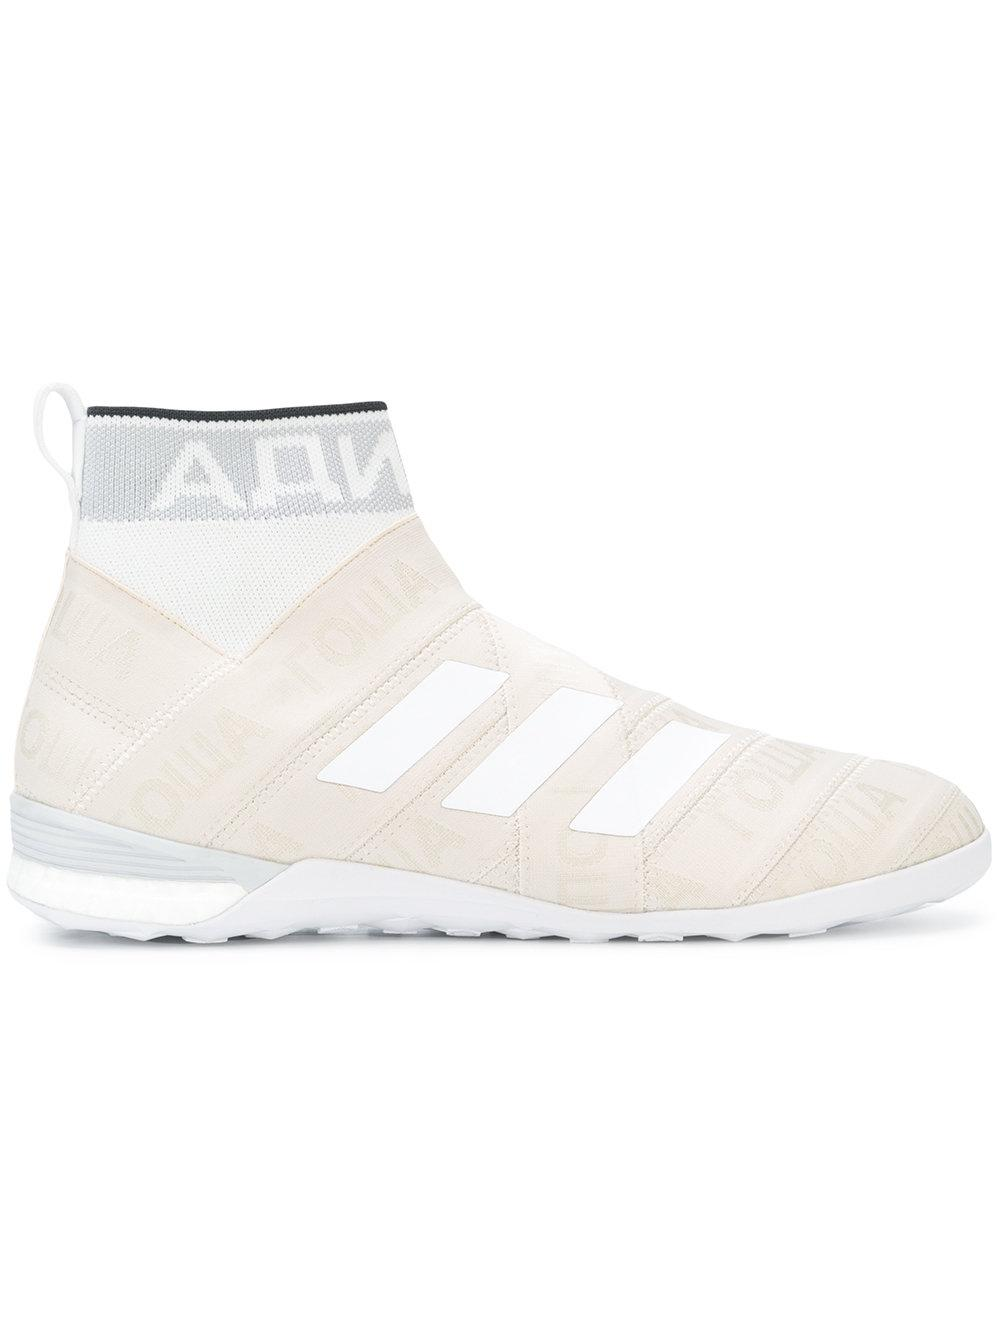 on sale 525c7 88002 Beige Gosha Rubchinskiy x Adidas sock effect hi-top sneakers from Gosha  Rubchinskiy featuring a round toe, a signature three stripe detail, a  pull-on style, ...